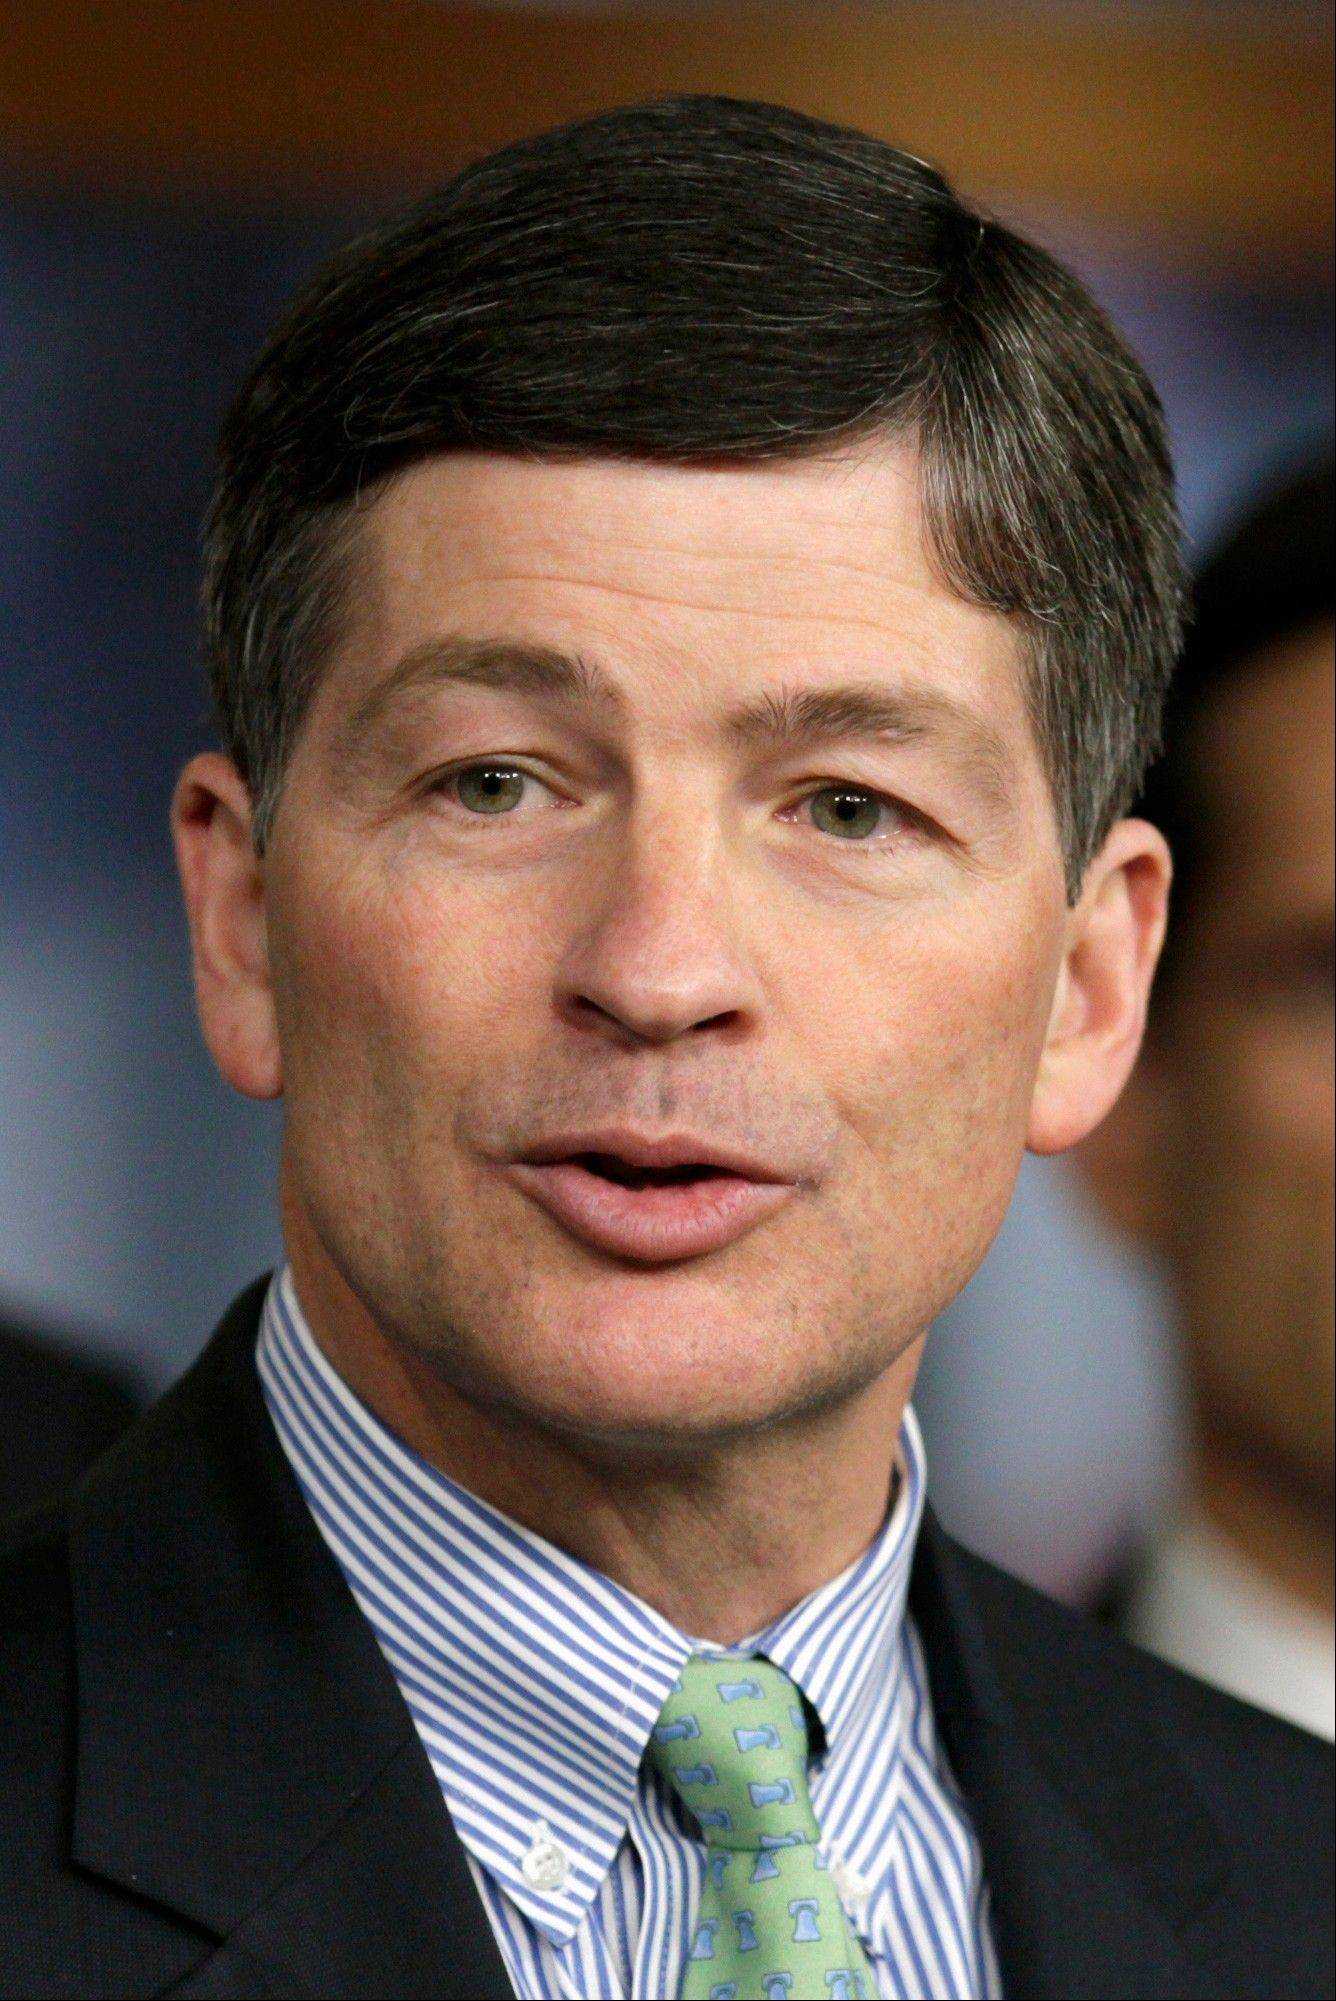 Rep. Jeb Hensarling, a Texas Republican, has been named co-chair of the powerful new committee that will try to come up with a bipartisan plan this fall to reduce the federal budget deficit by more than $1 trillion.